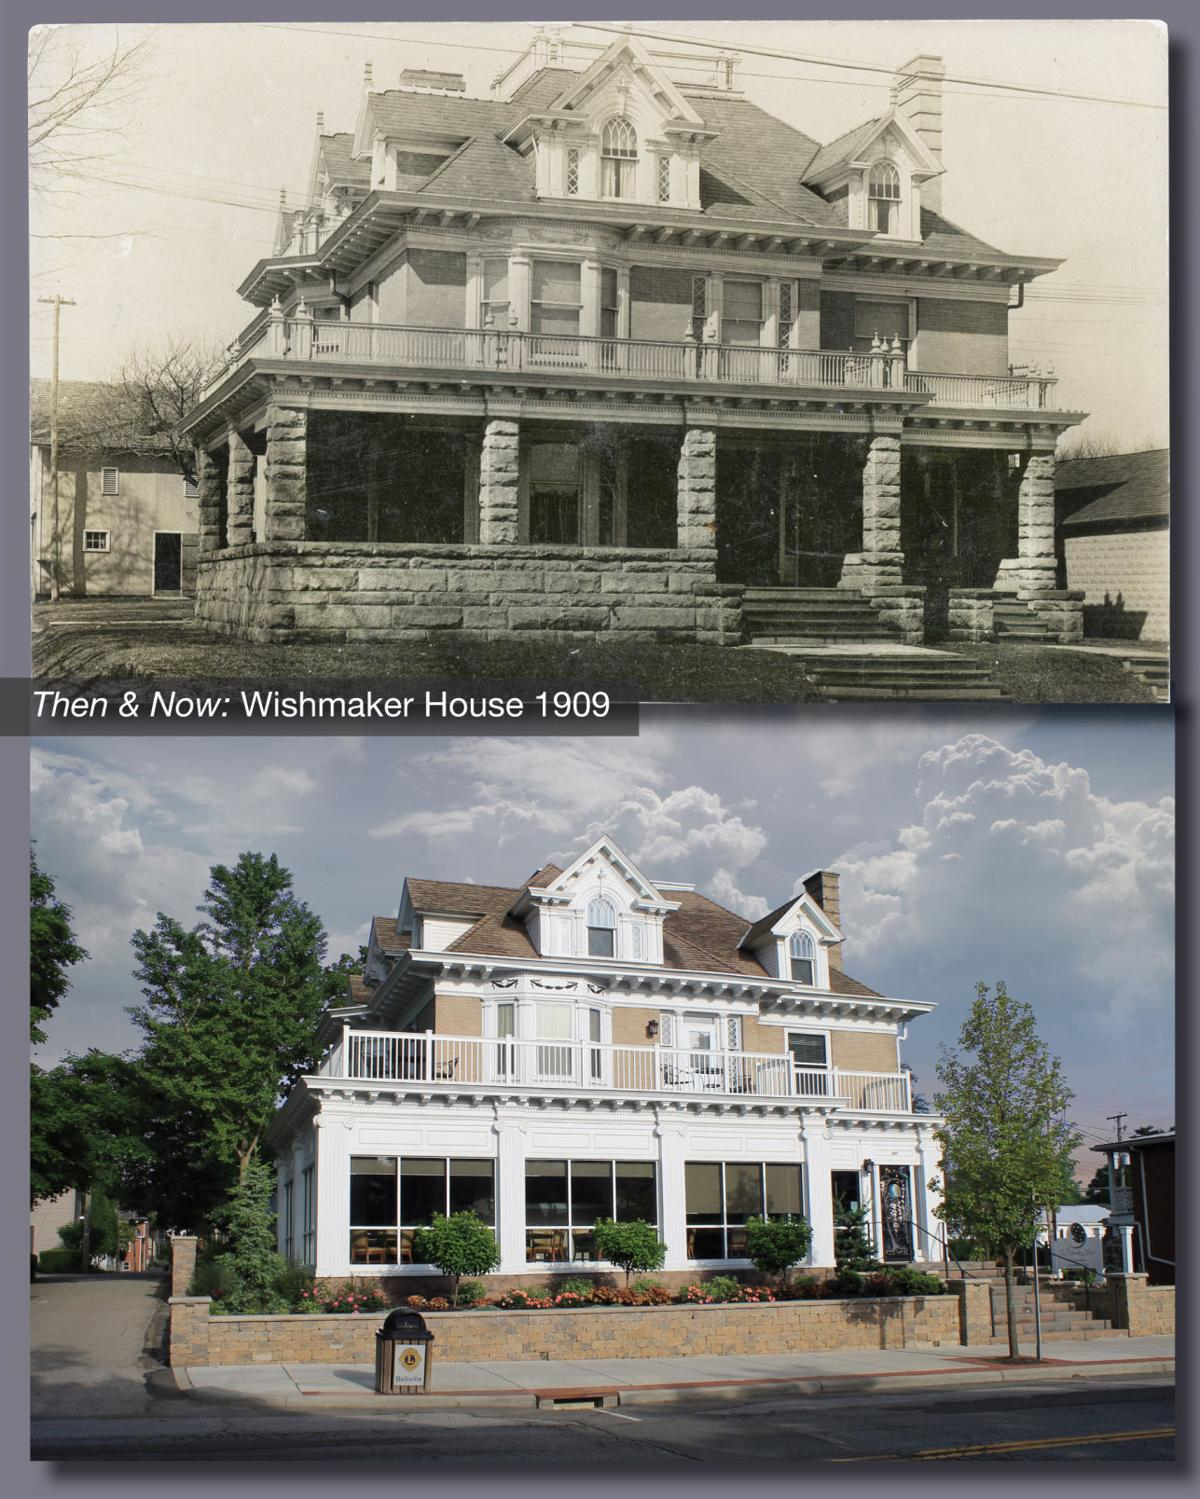 Then & Now: The Wishmaker House